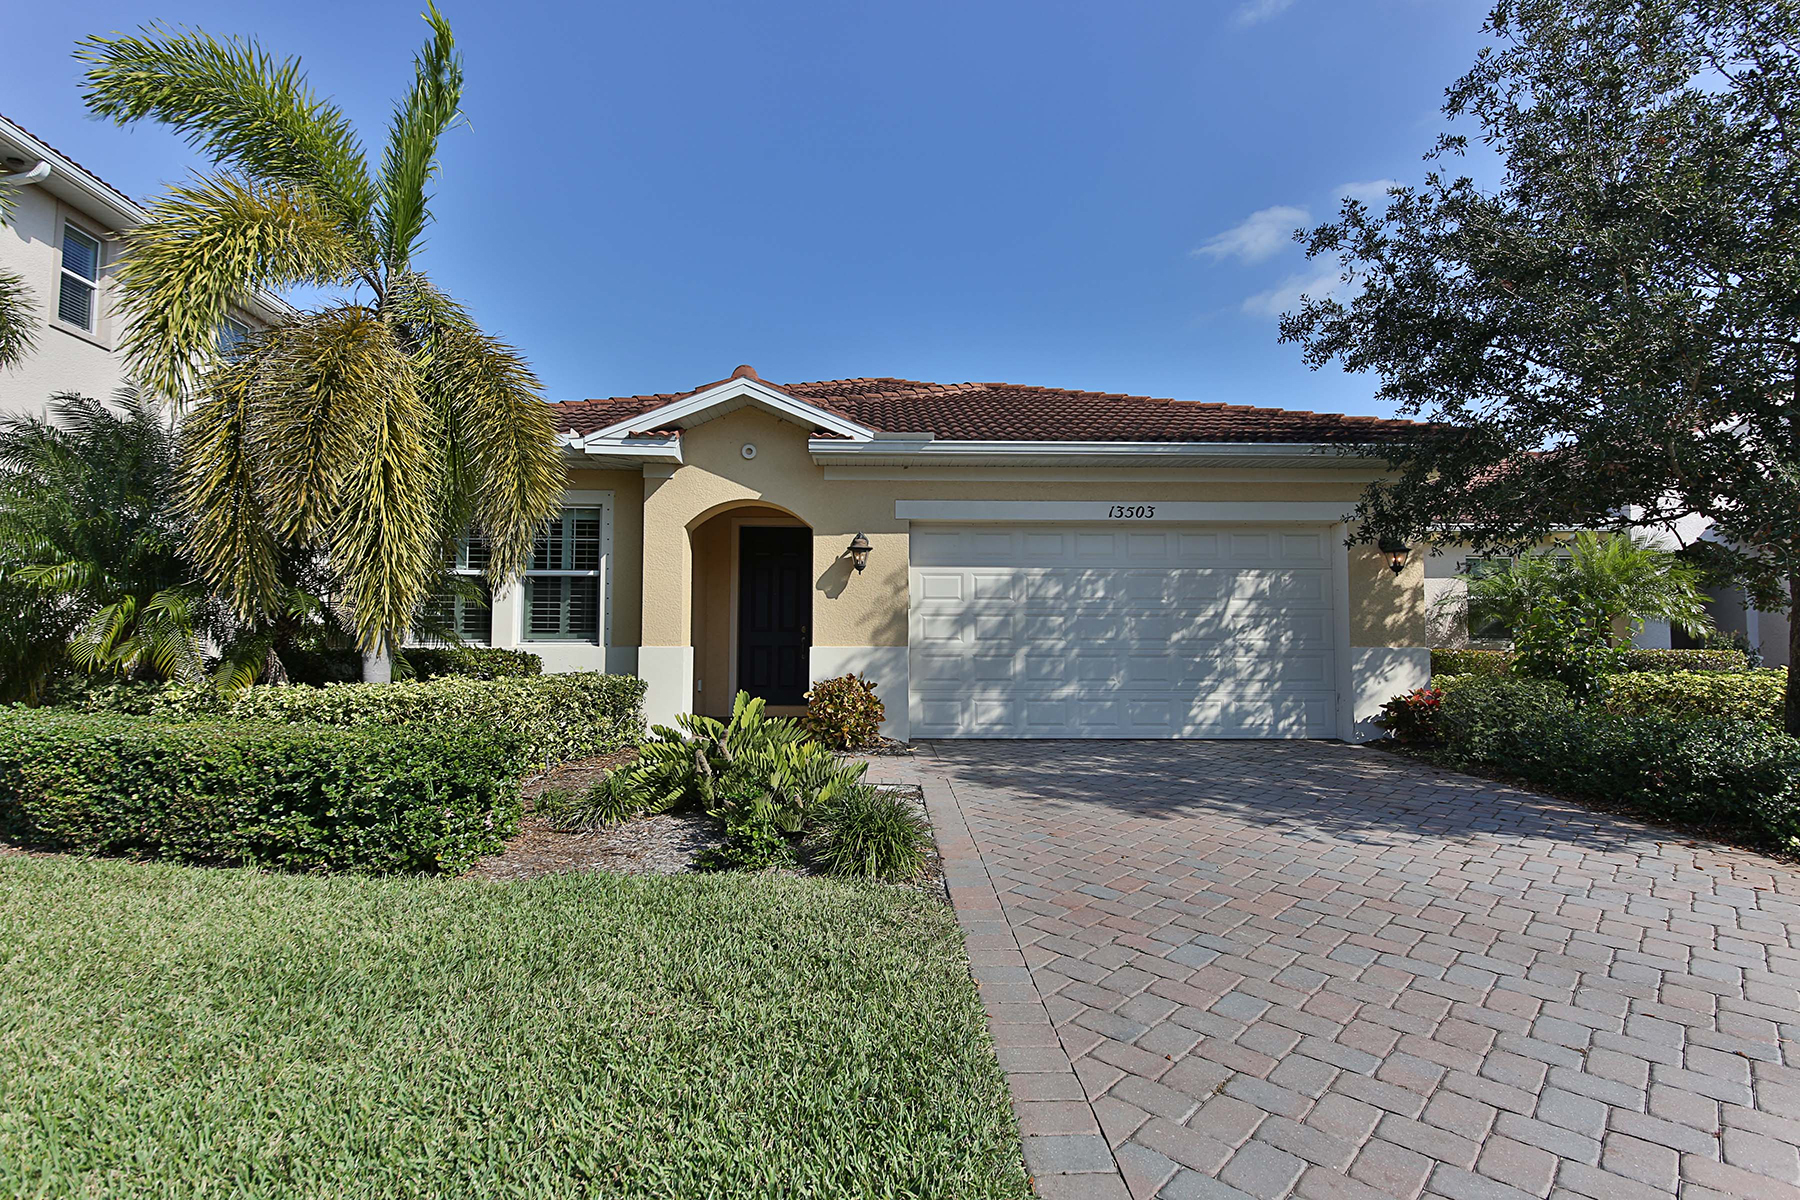 واحد منزل الأسرة للـ Sale في MANCHESTER SQUARE 13503 Cambridge Ln, Naples, Florida 34109 United States